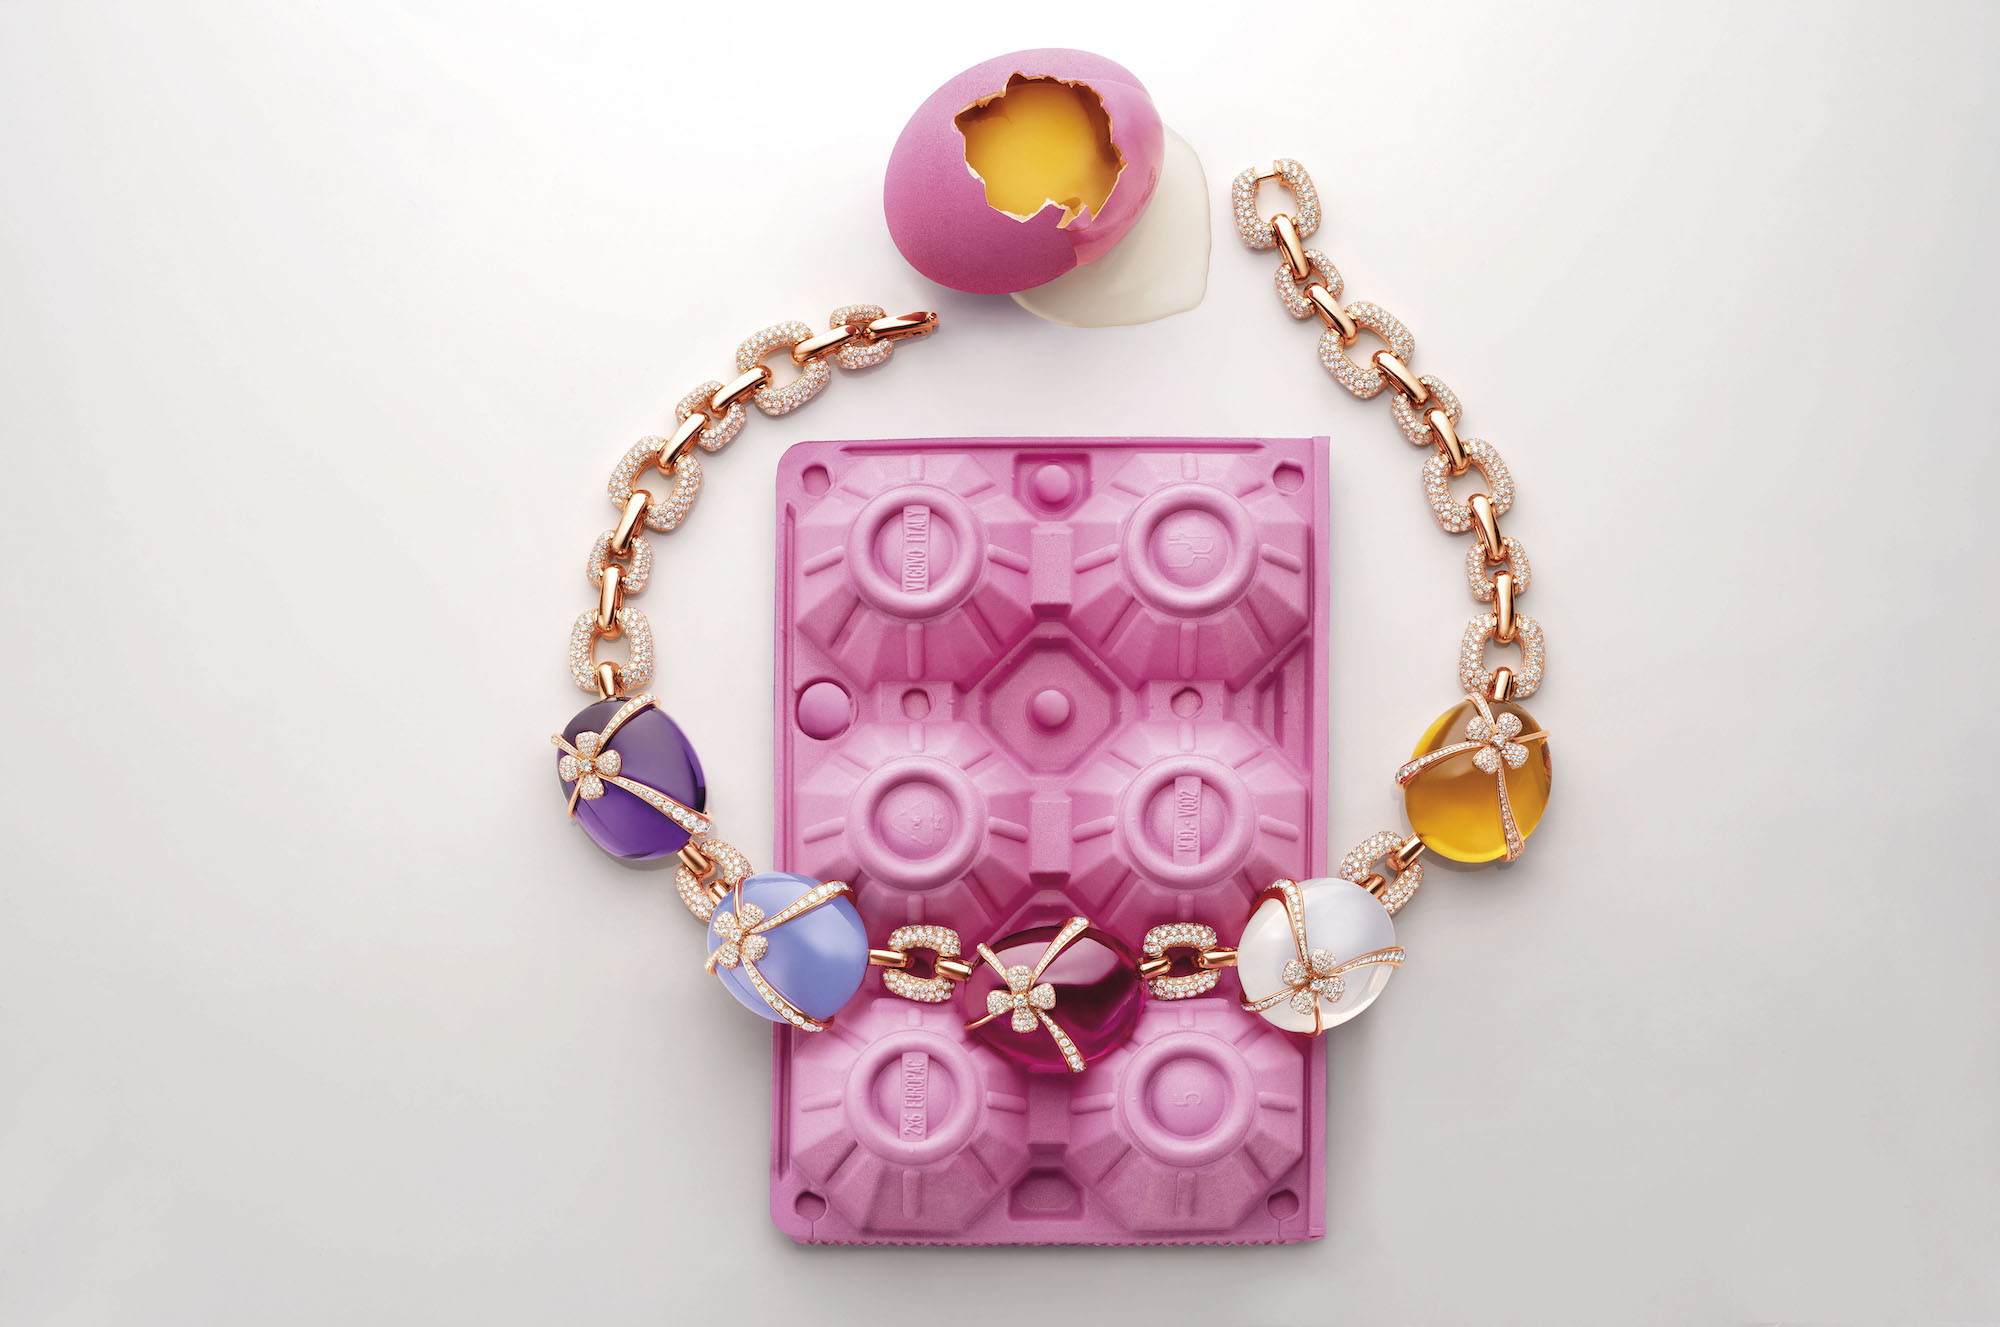 Bulgari and the classical '80s